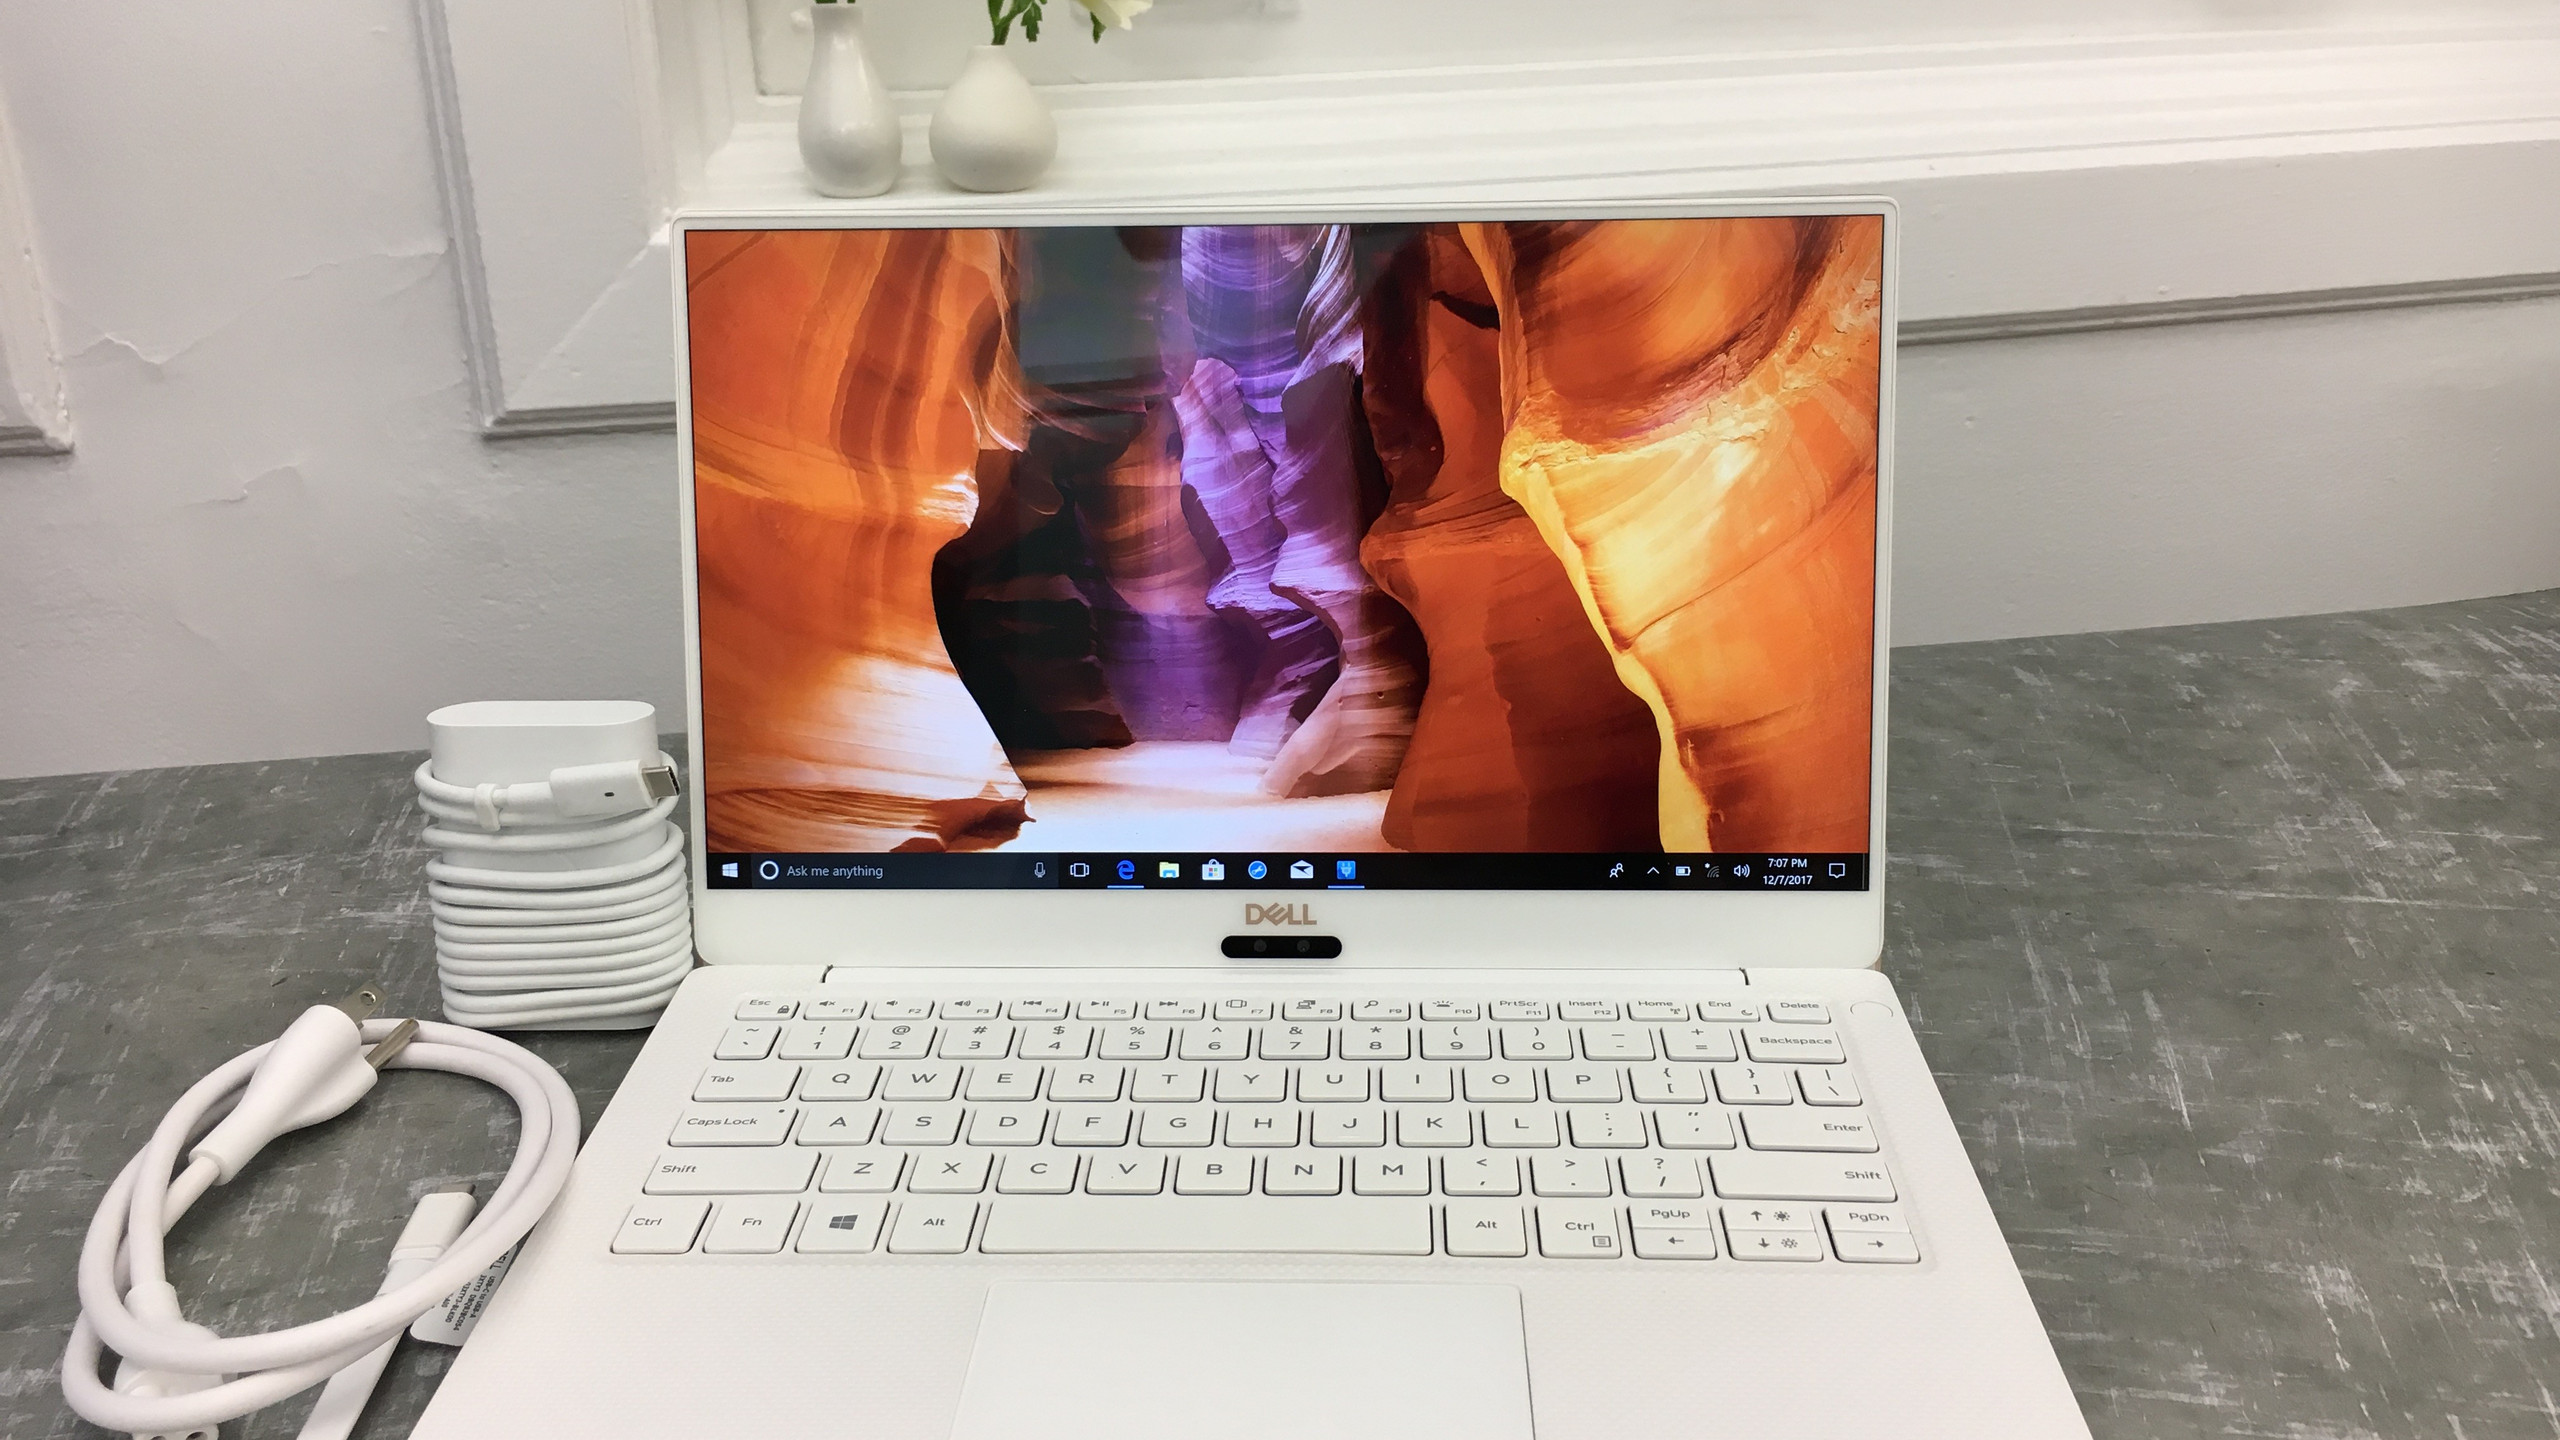 Dell XPS 13 (2018) Alpine White